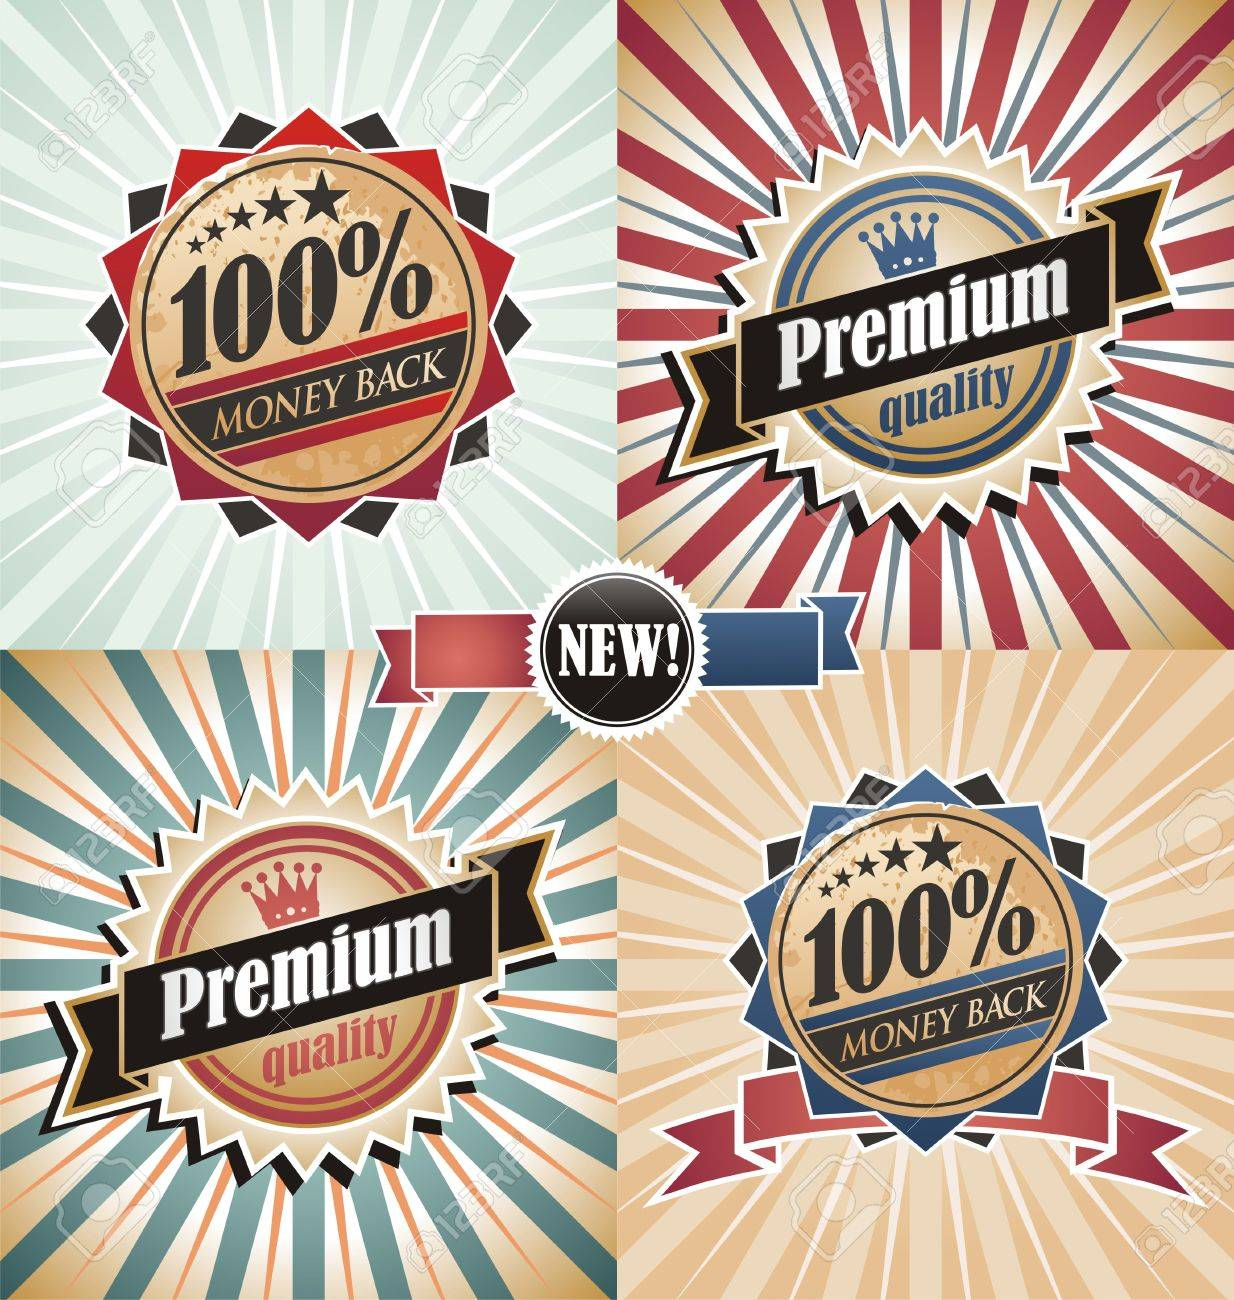 Vintage quality and guaranteed backgrounds and labels Stock Vector - 16714747